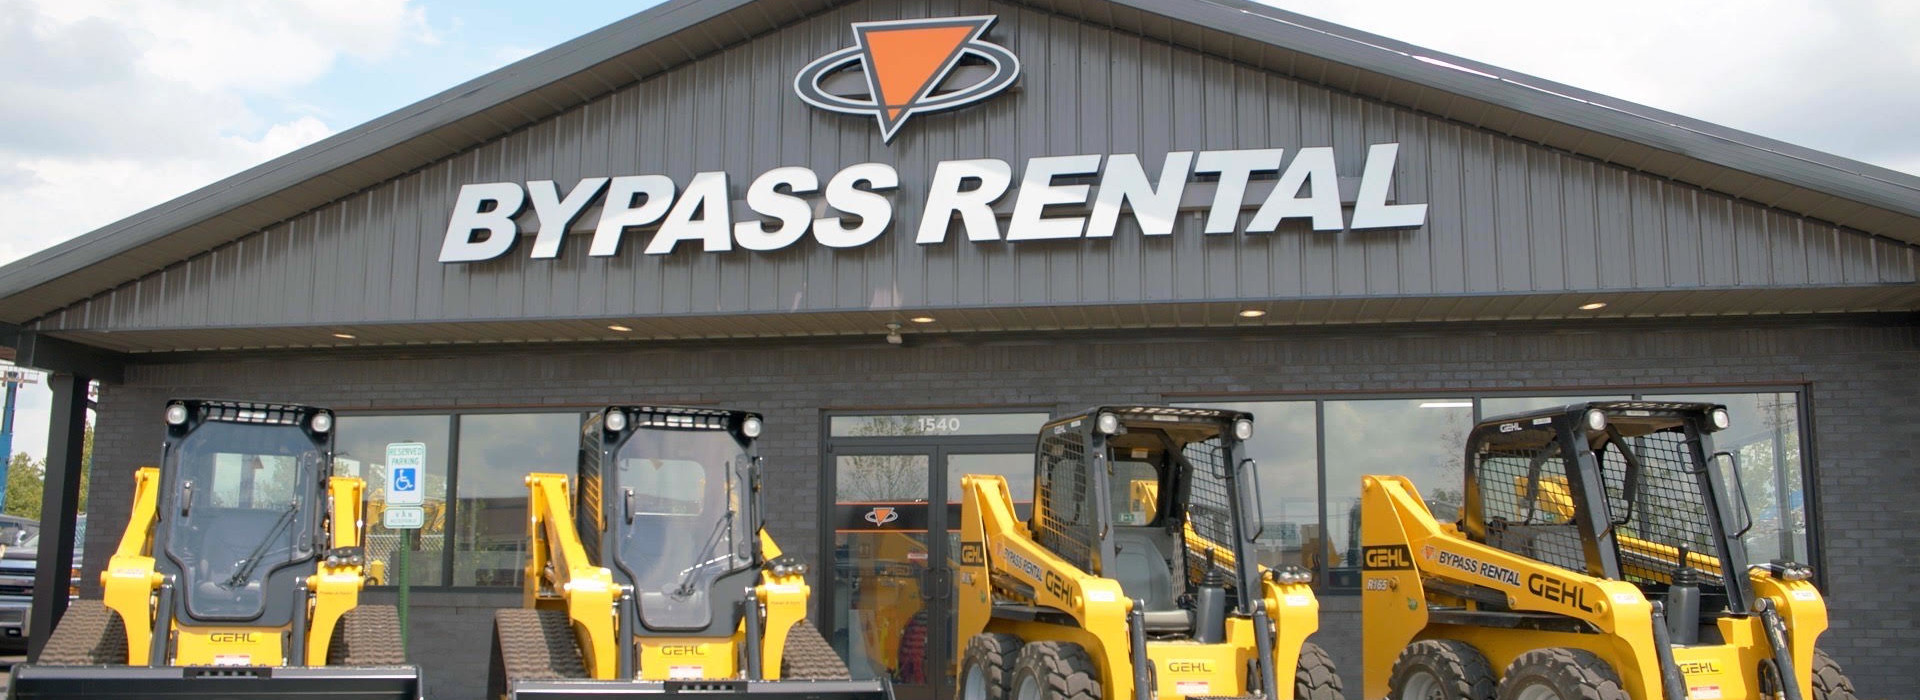 Equipment rentals in Greater Lexington